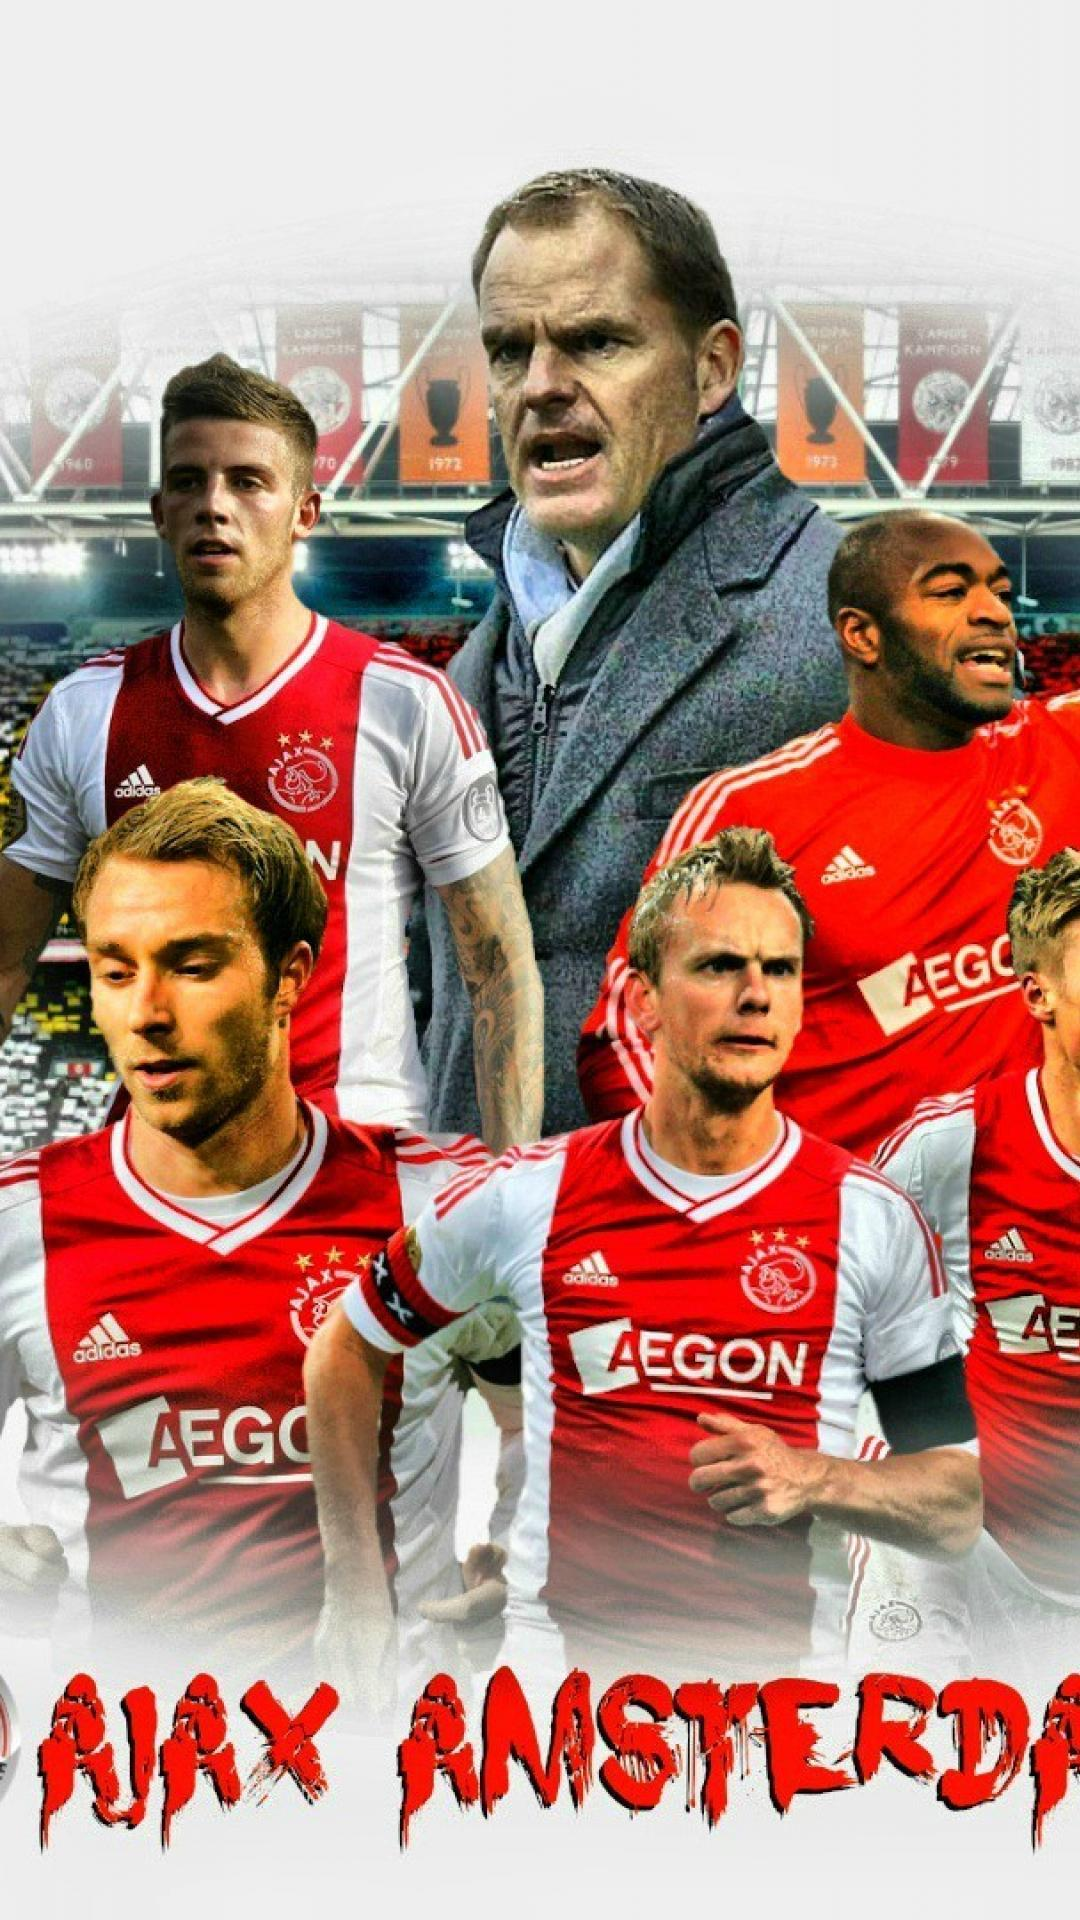 Ajax football teams futbol futebol amsterdam eredivisie wallpapers